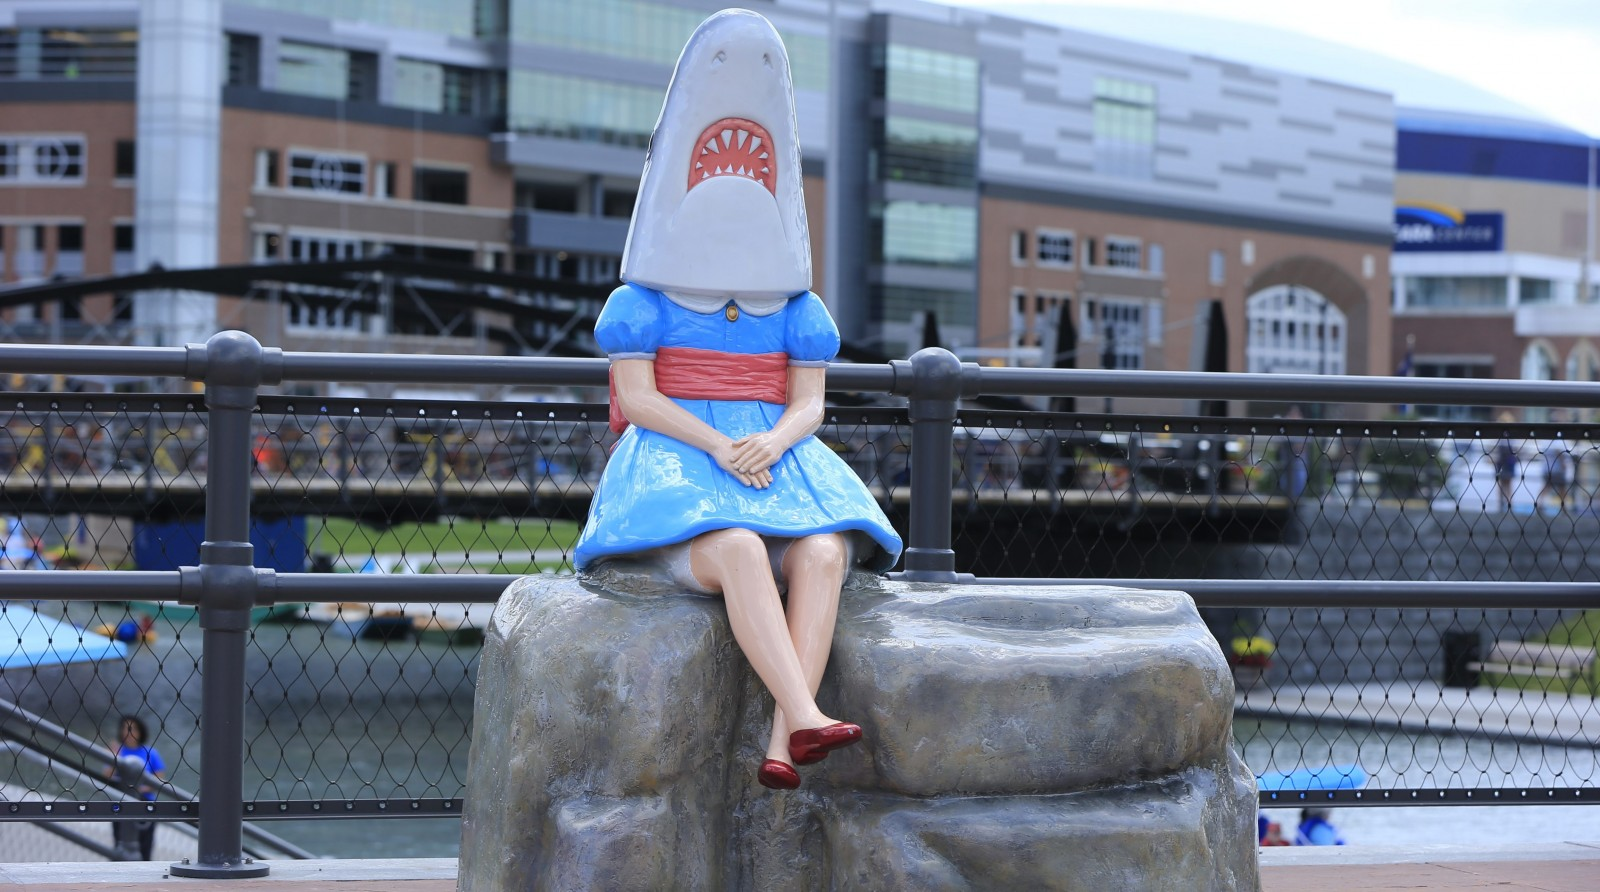 'Shark Girl,' a sculpture by Casey Riordan Millard, is the subject of a debate between the Albright-Knox Art Gallery and the authorities who oversee Canalside. (Harry Scull Jr./News file photo)